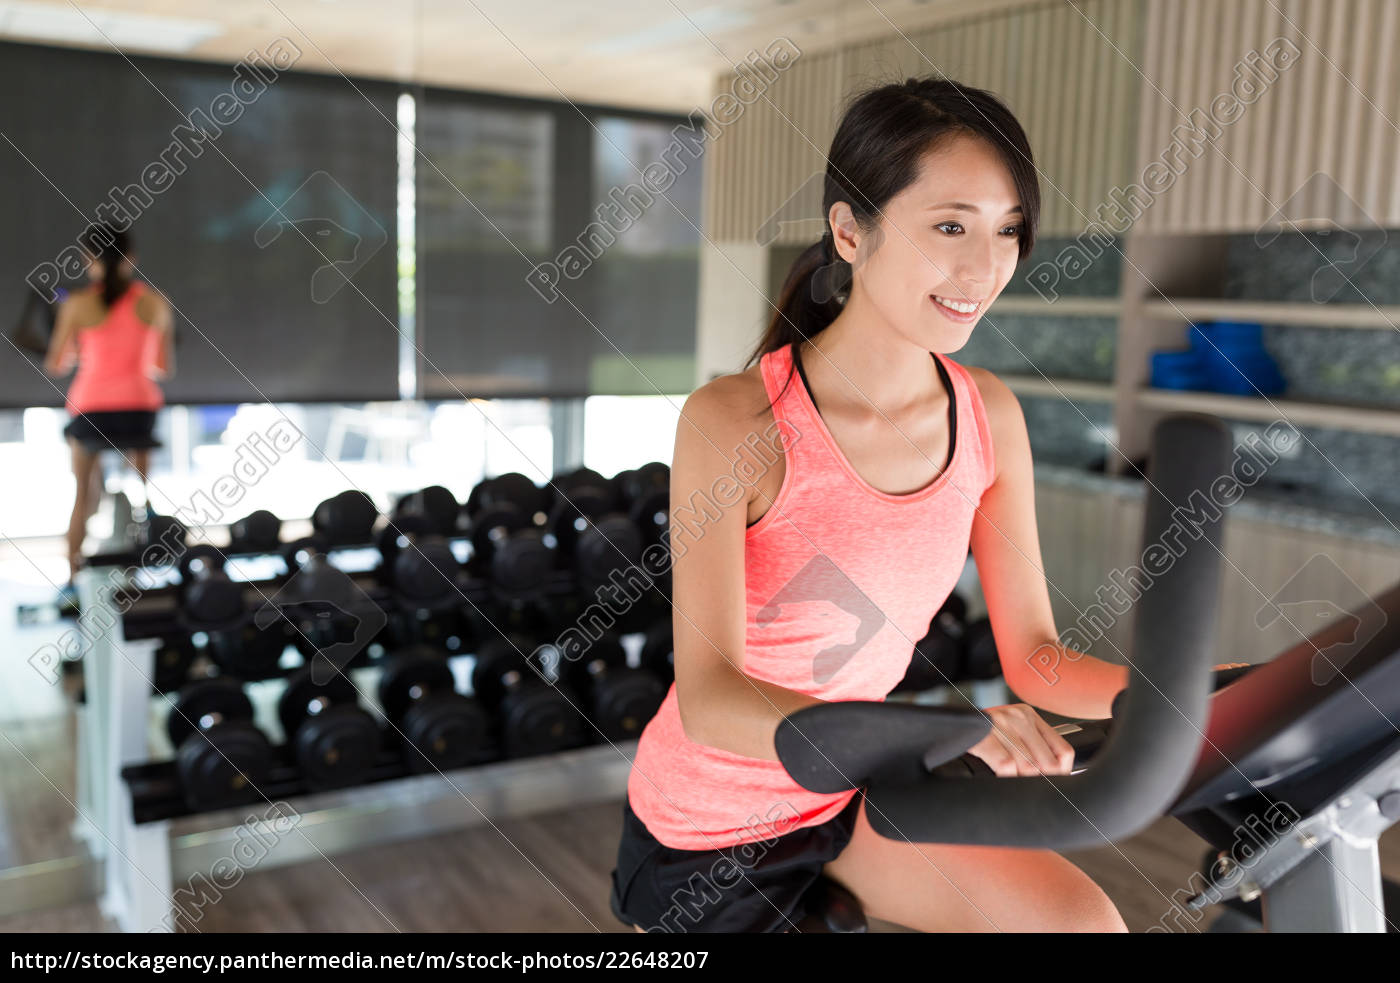 woman, cycling, in, the, gym, room - 22648207